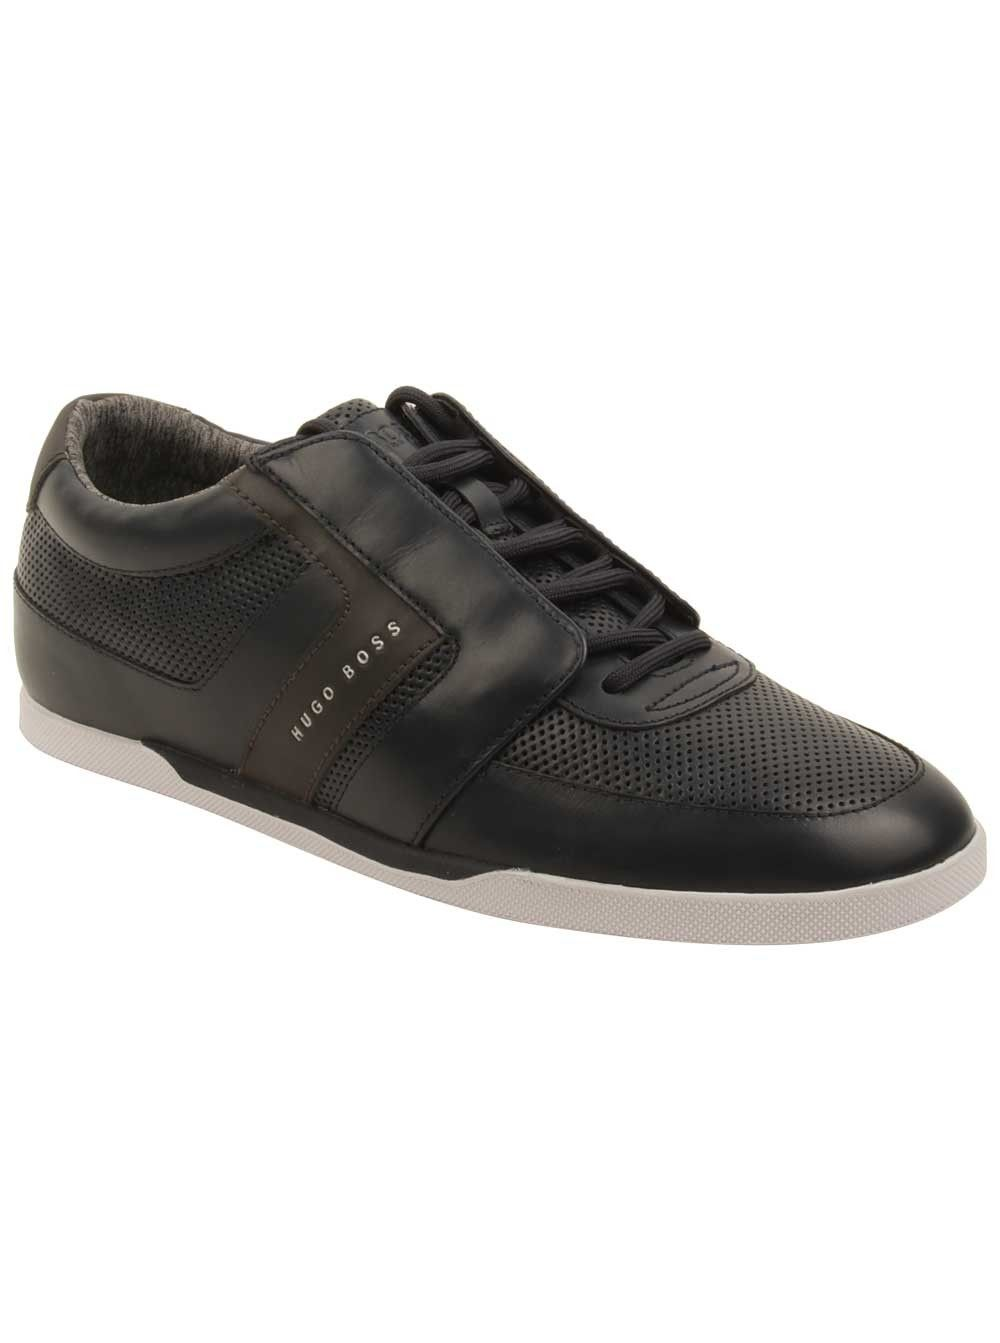 Mens Shuttle_Tenn_Lux Trainers HUGO BOSS 7tvxmTMl